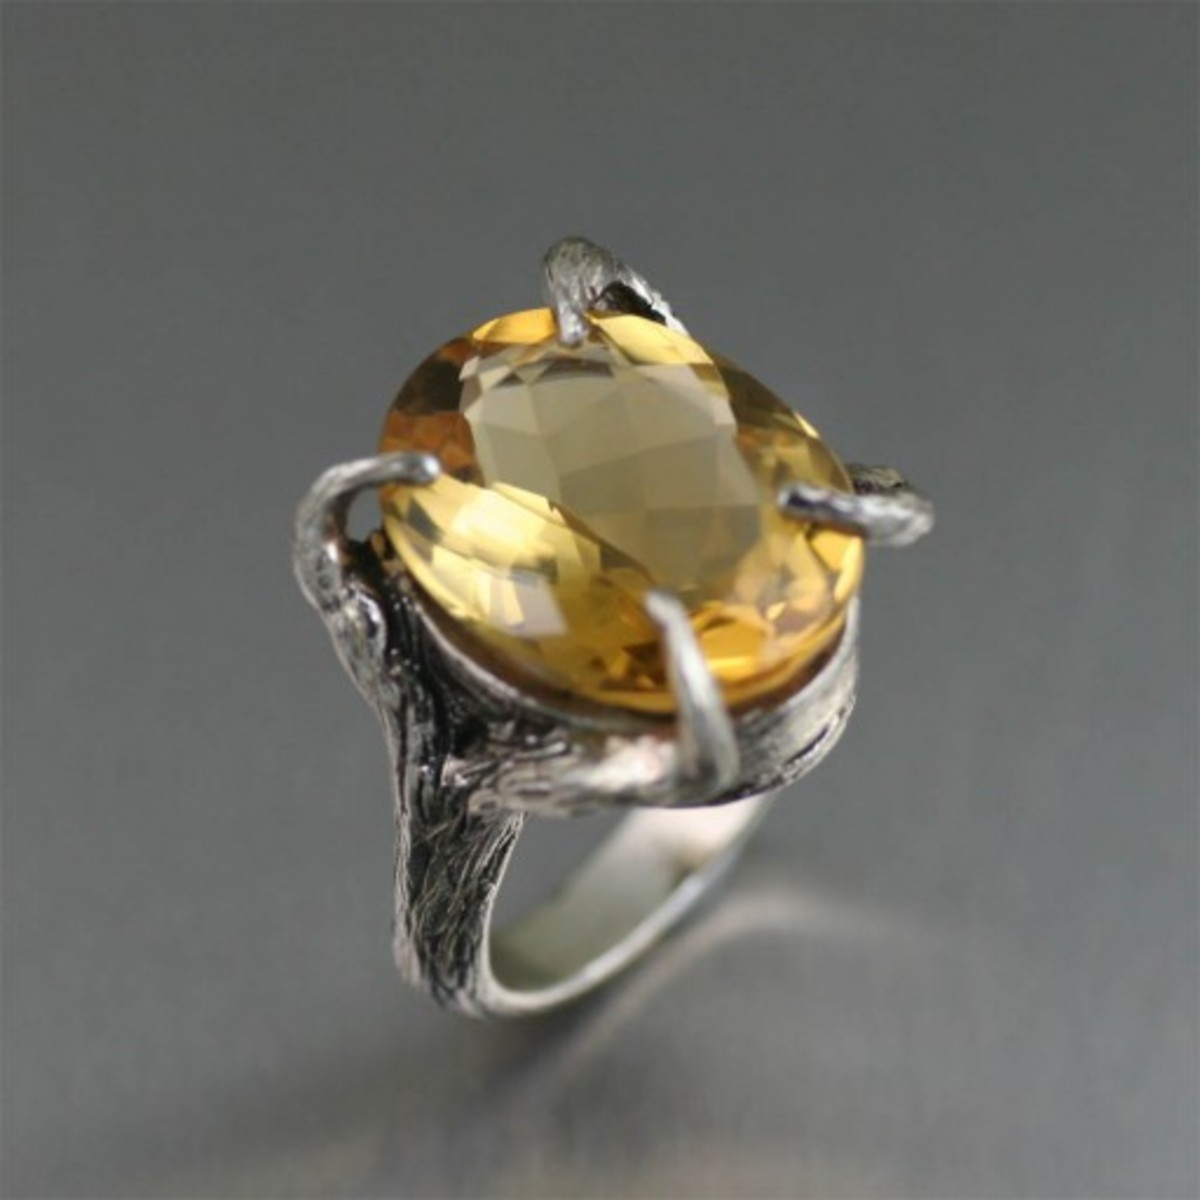 13 ct Cushion Cut Citrine Sterling Silver Cocktail Ring